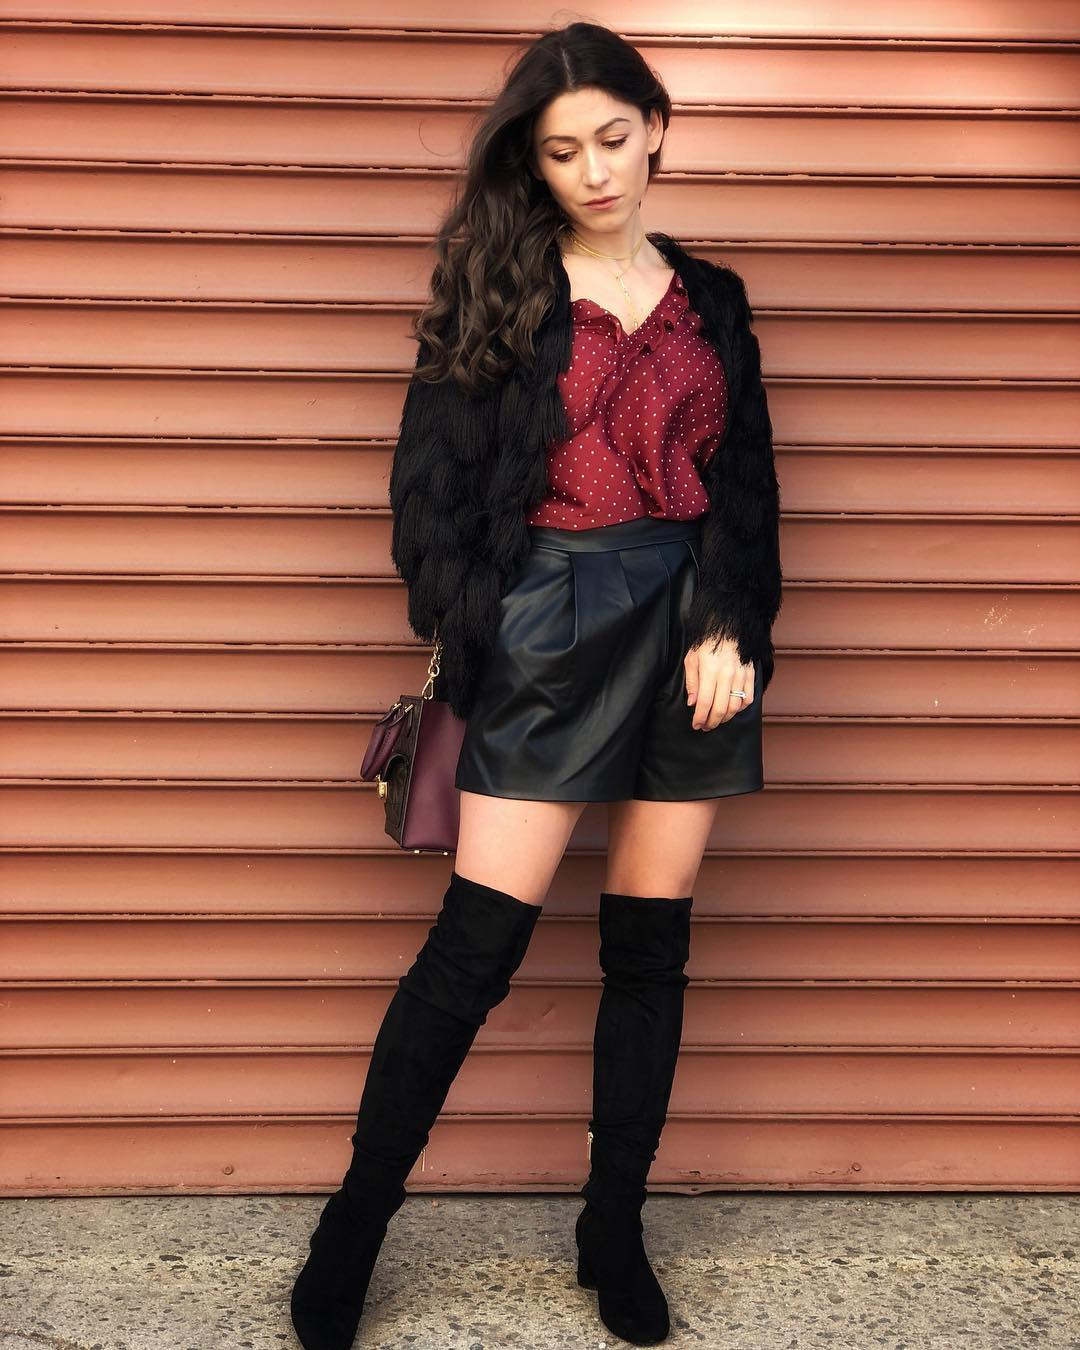 Maroon Button Down Polka Dots Shirt, Leather Mini Skirt, Faux Jacket With Crossbody Bag And High Thigh Shoes